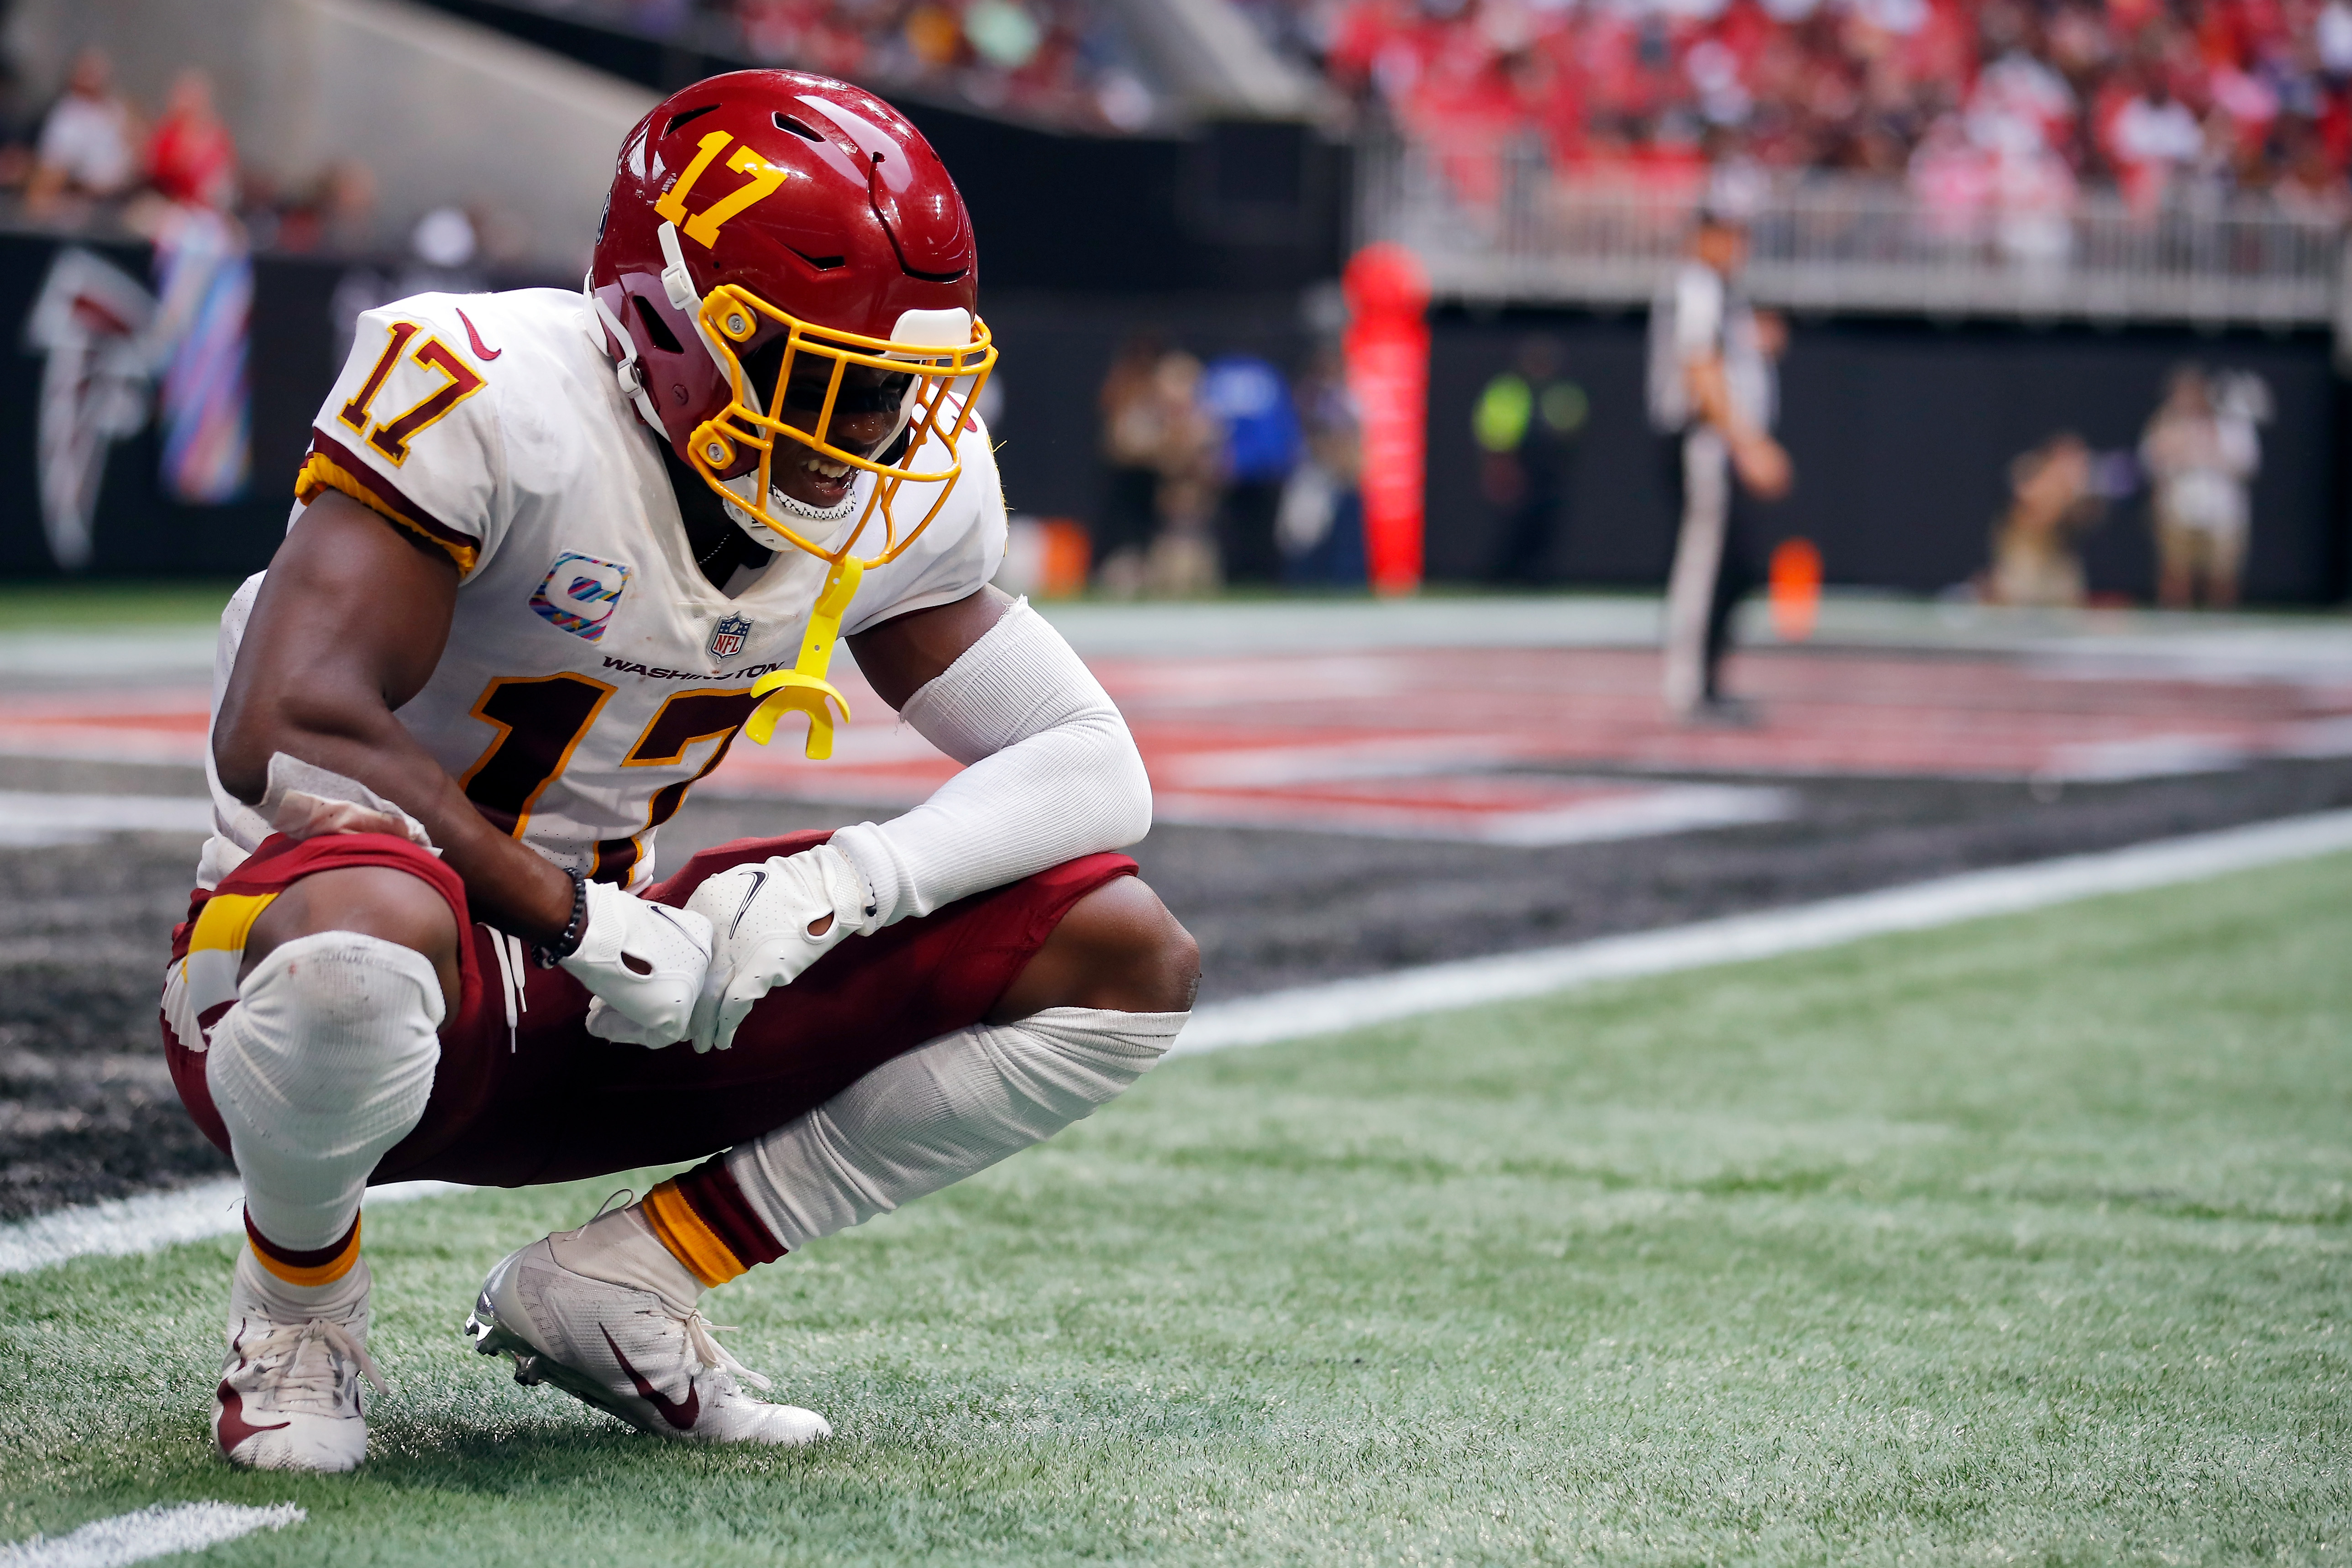 Terry McLaurin #17 of the Washington Football Team takes a moment to collect himself after being hit on the previous play against the Atlanta Falcons in the fourth quarter at Mercedes-Benz Stadium on October 03, 2021 in Atlanta, Georgia.